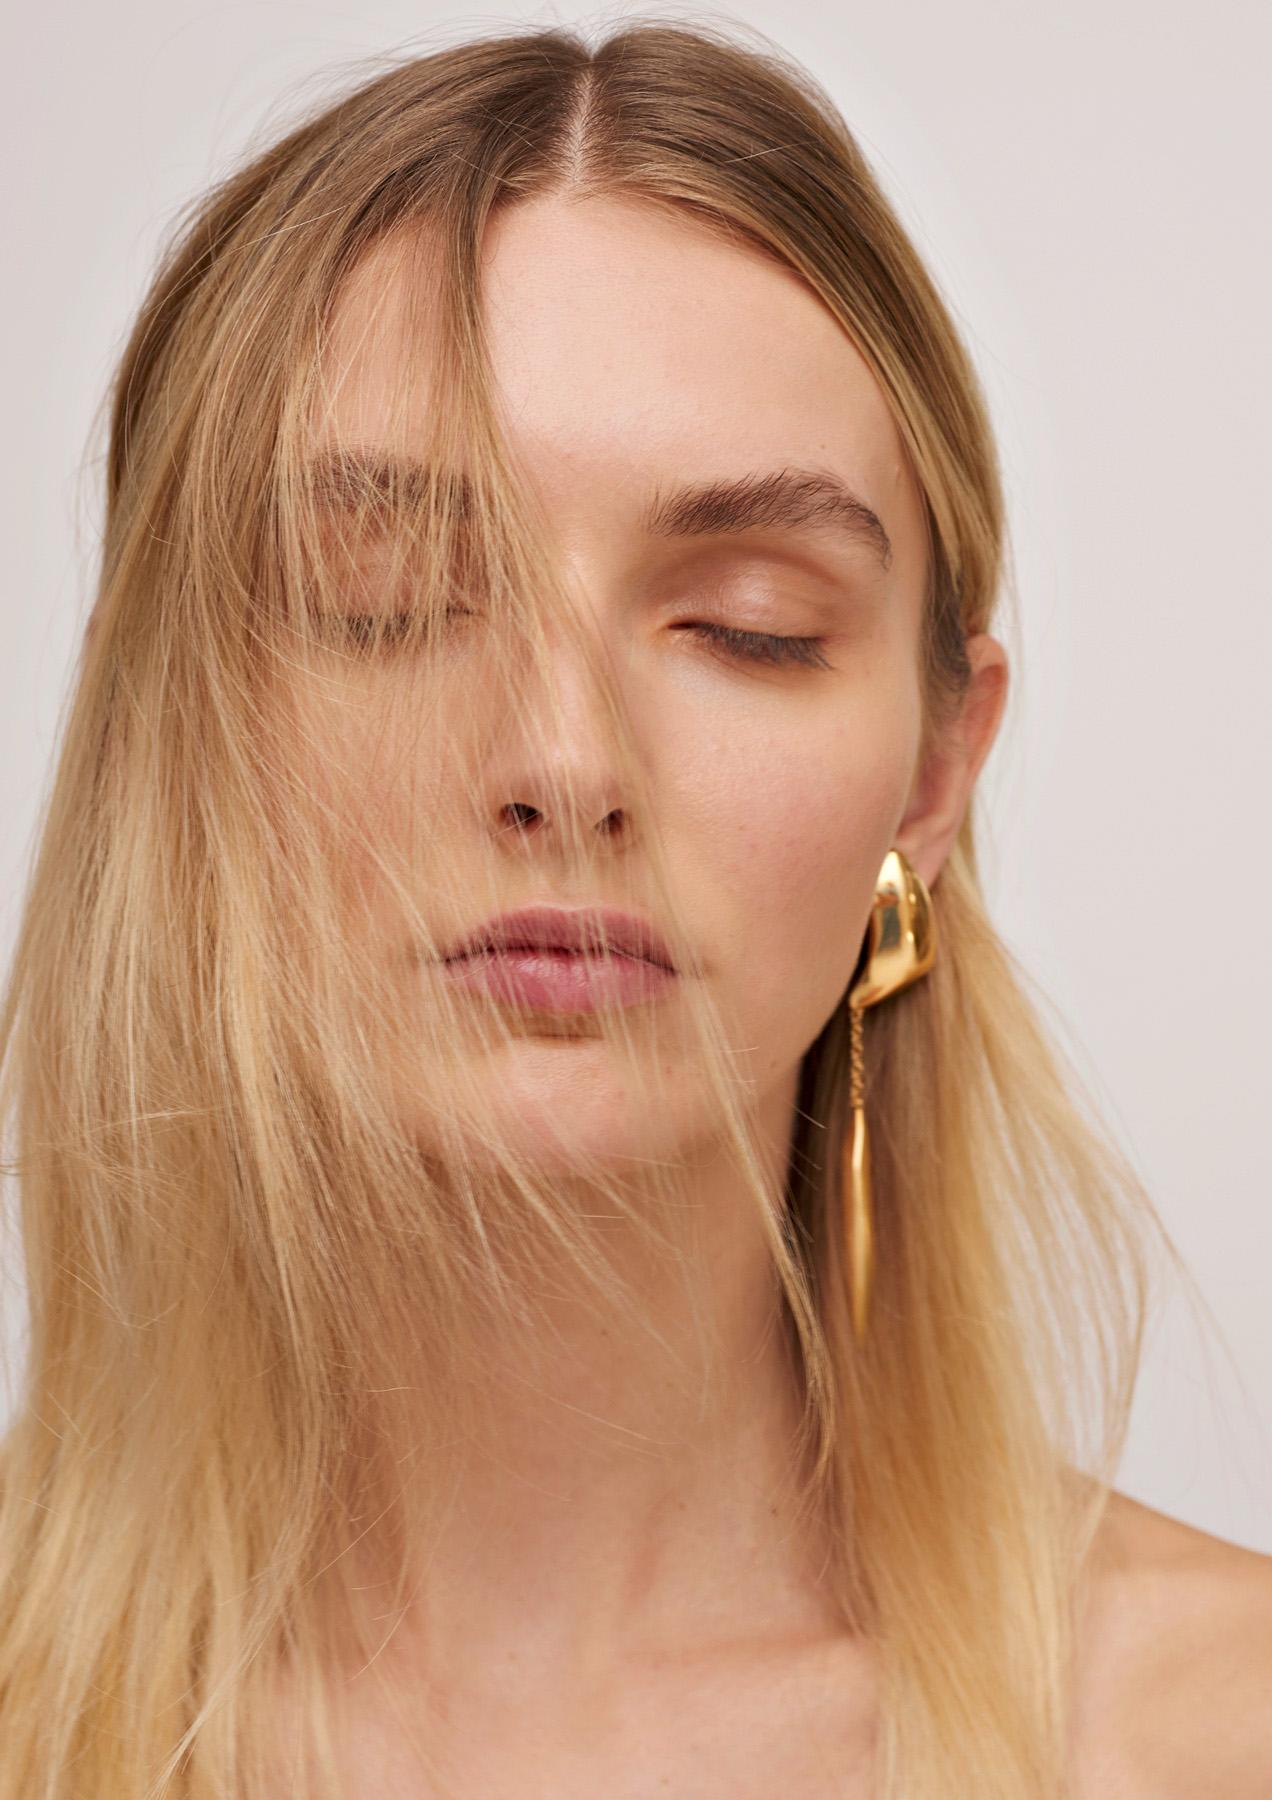 statement earrings with long chain pendant in clean sculptural design in gold